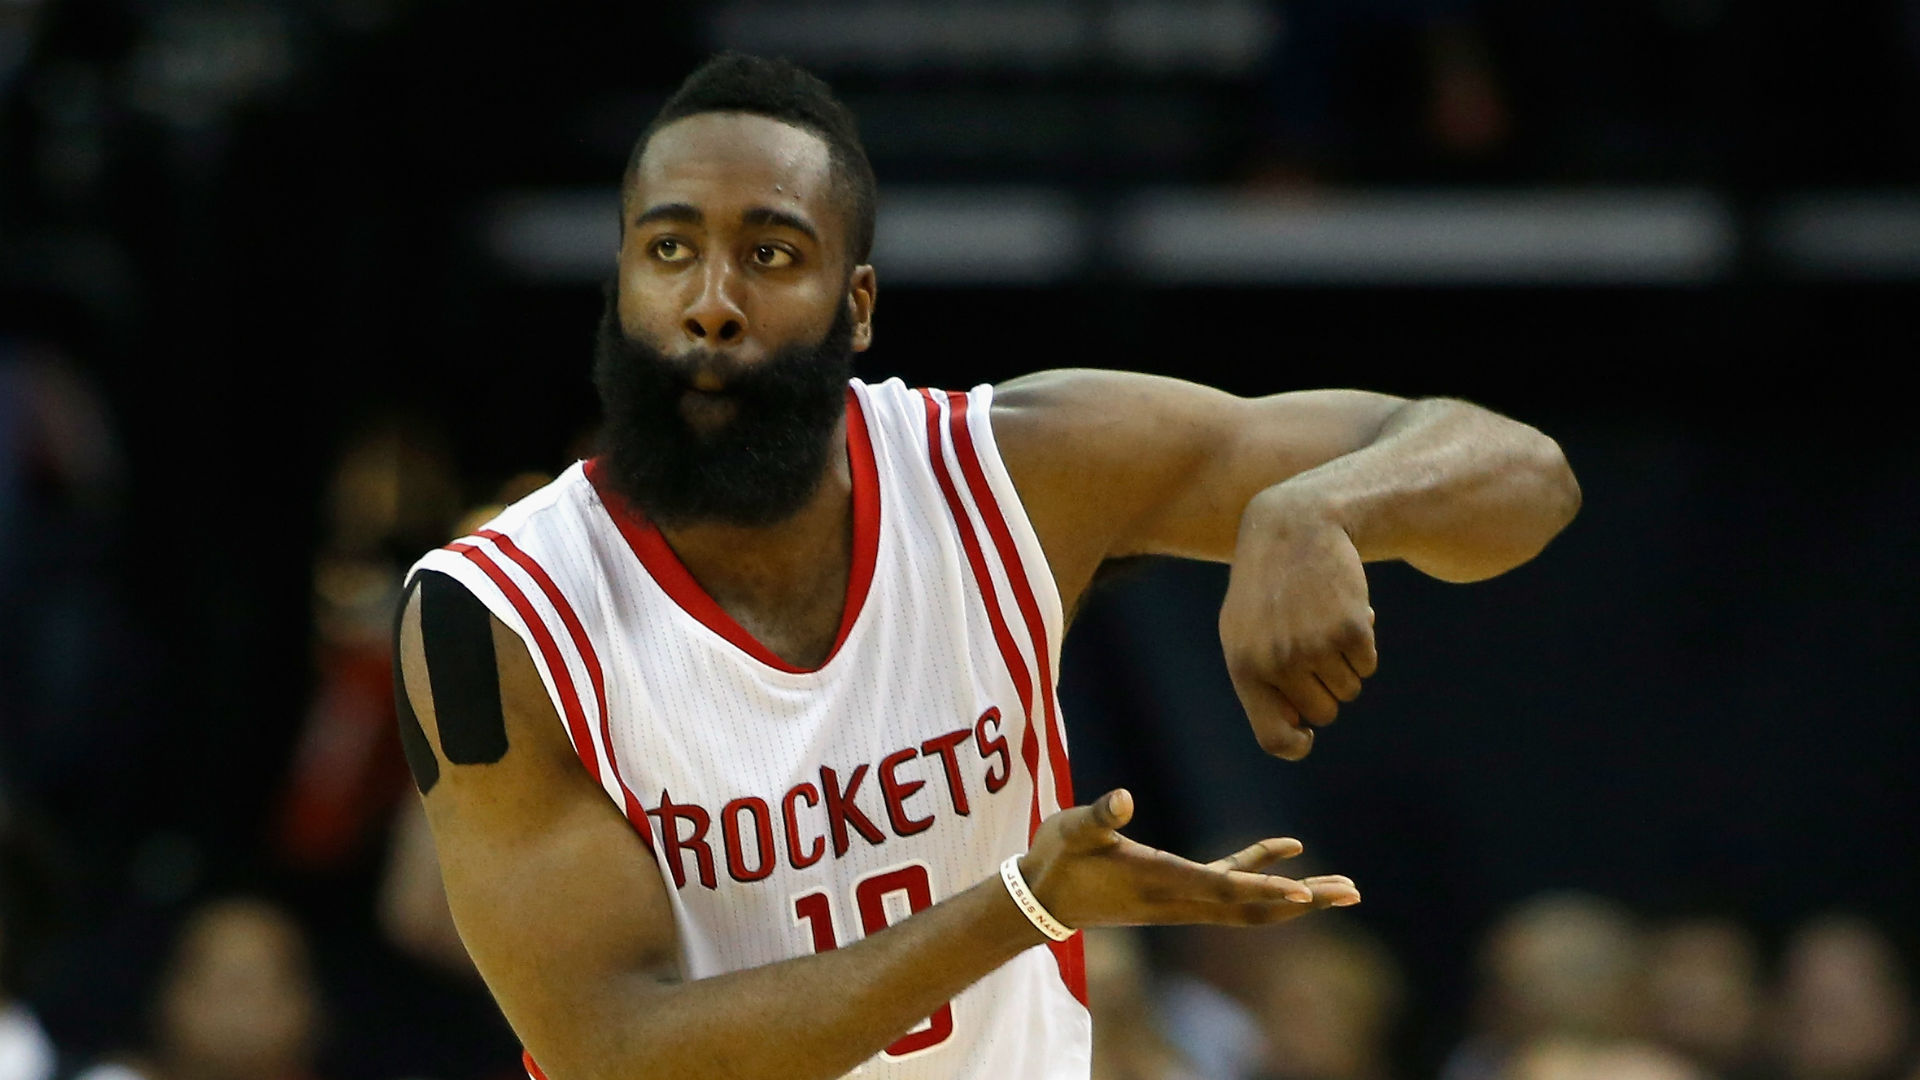 Analyzing Lil B, James Harden and a cryptic tweet